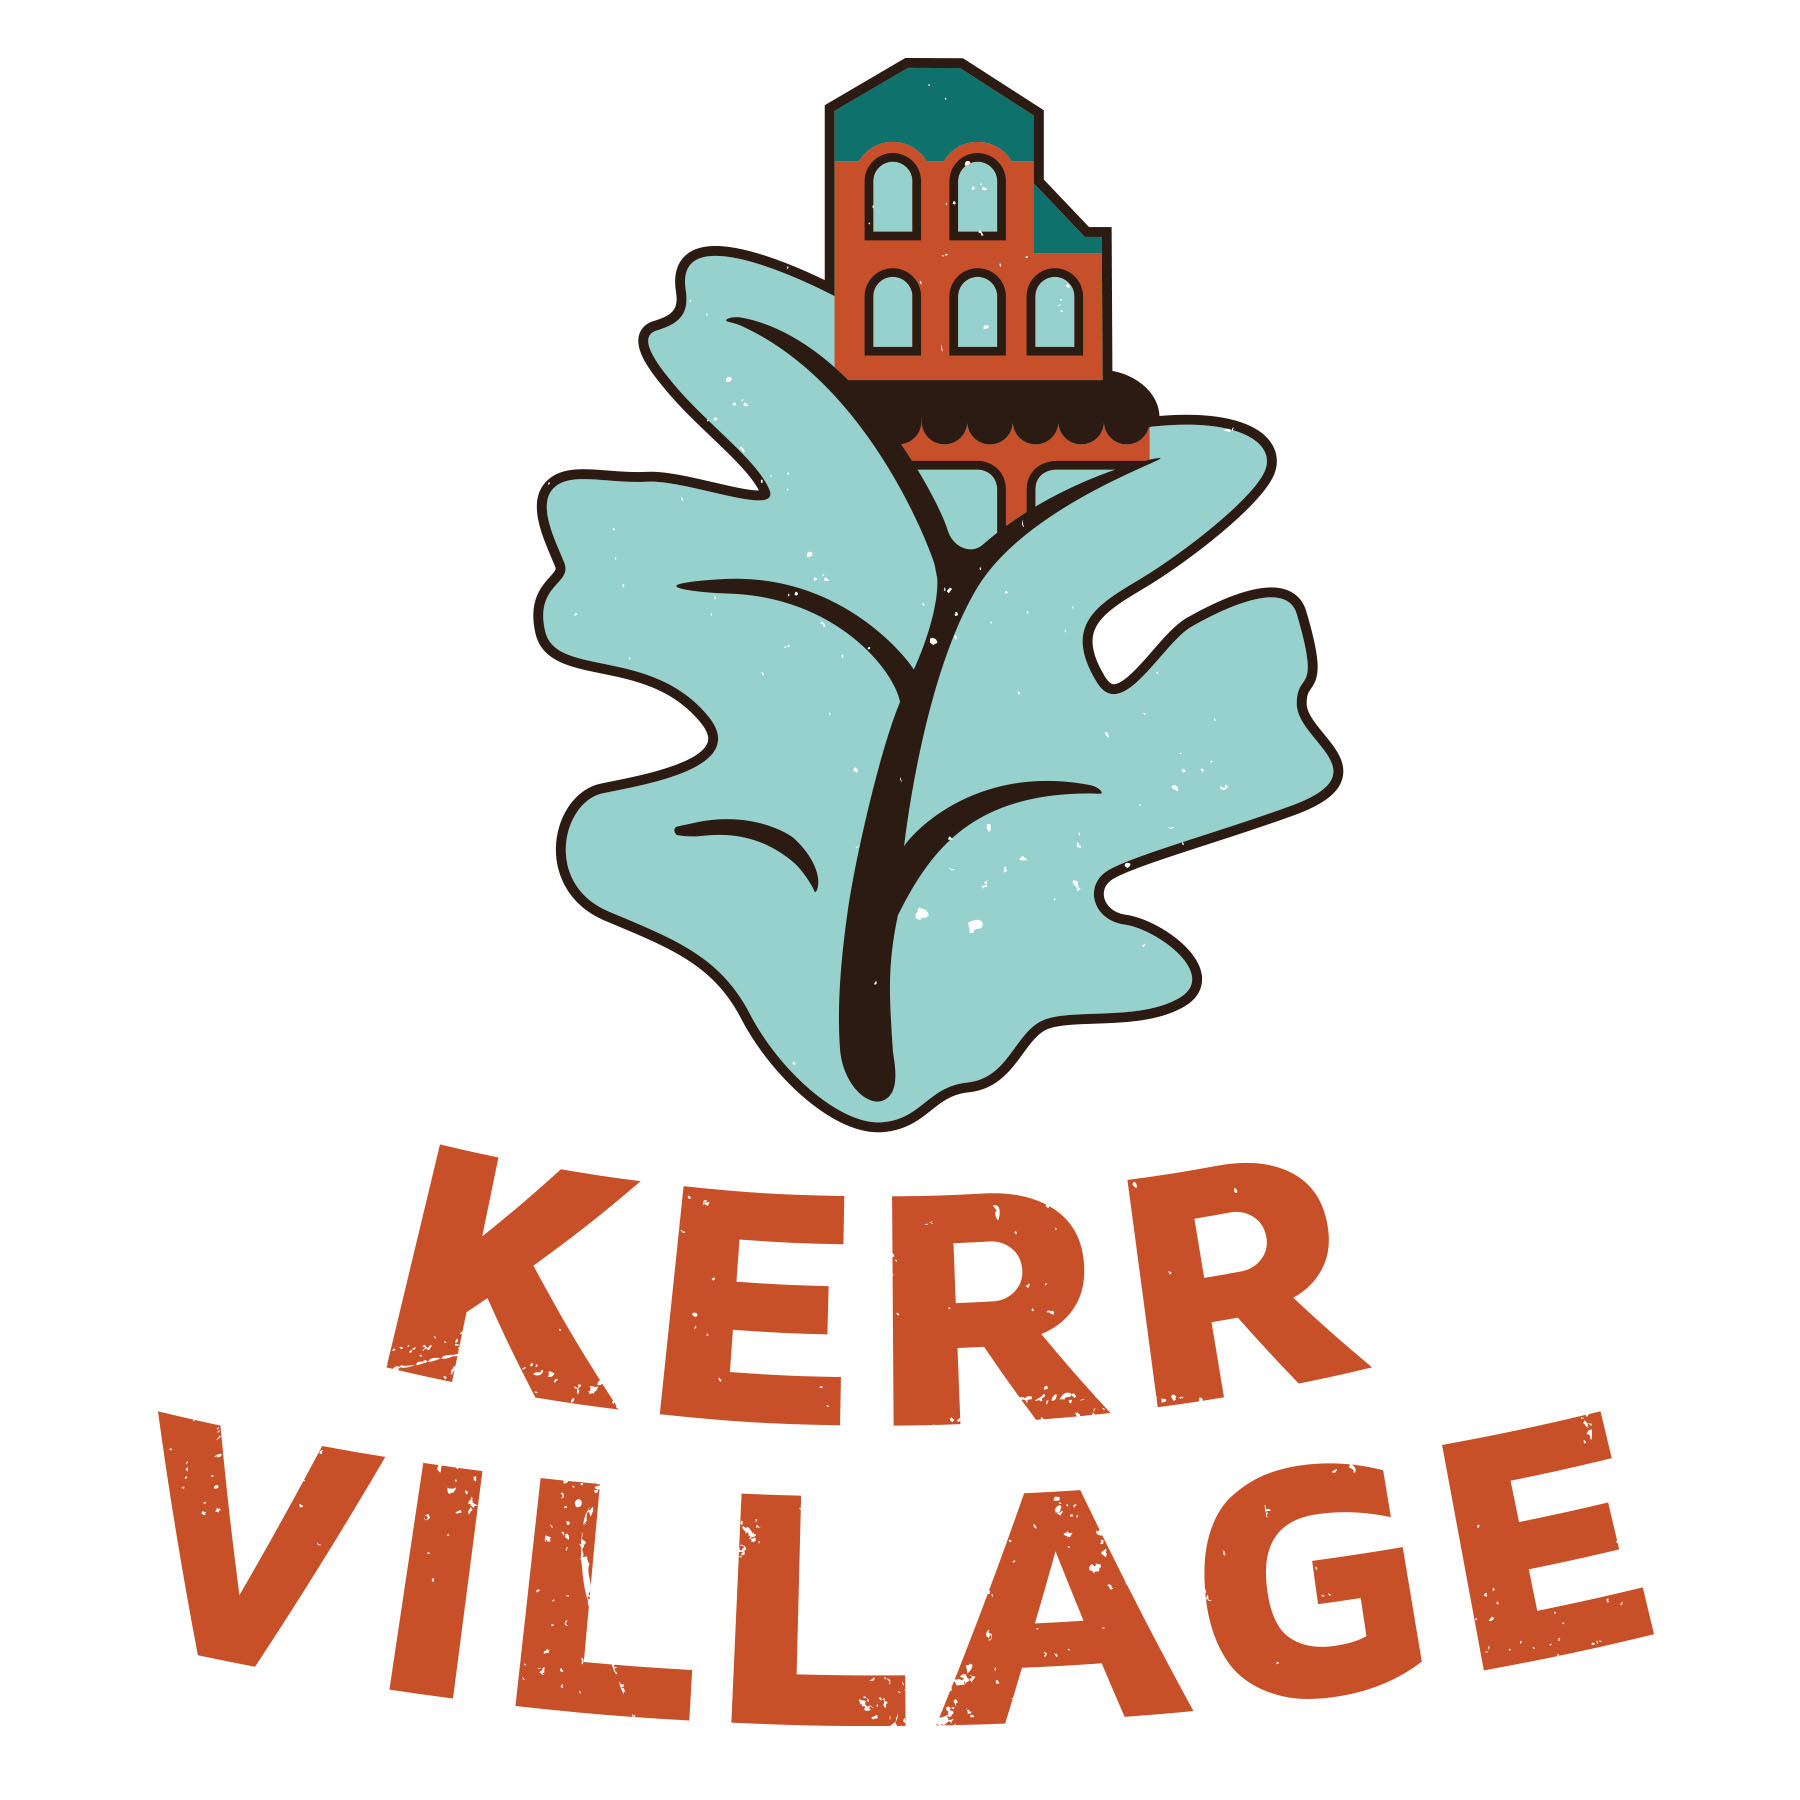 A Holiday Exemption By Law has been approved for the Kerr Village BIA